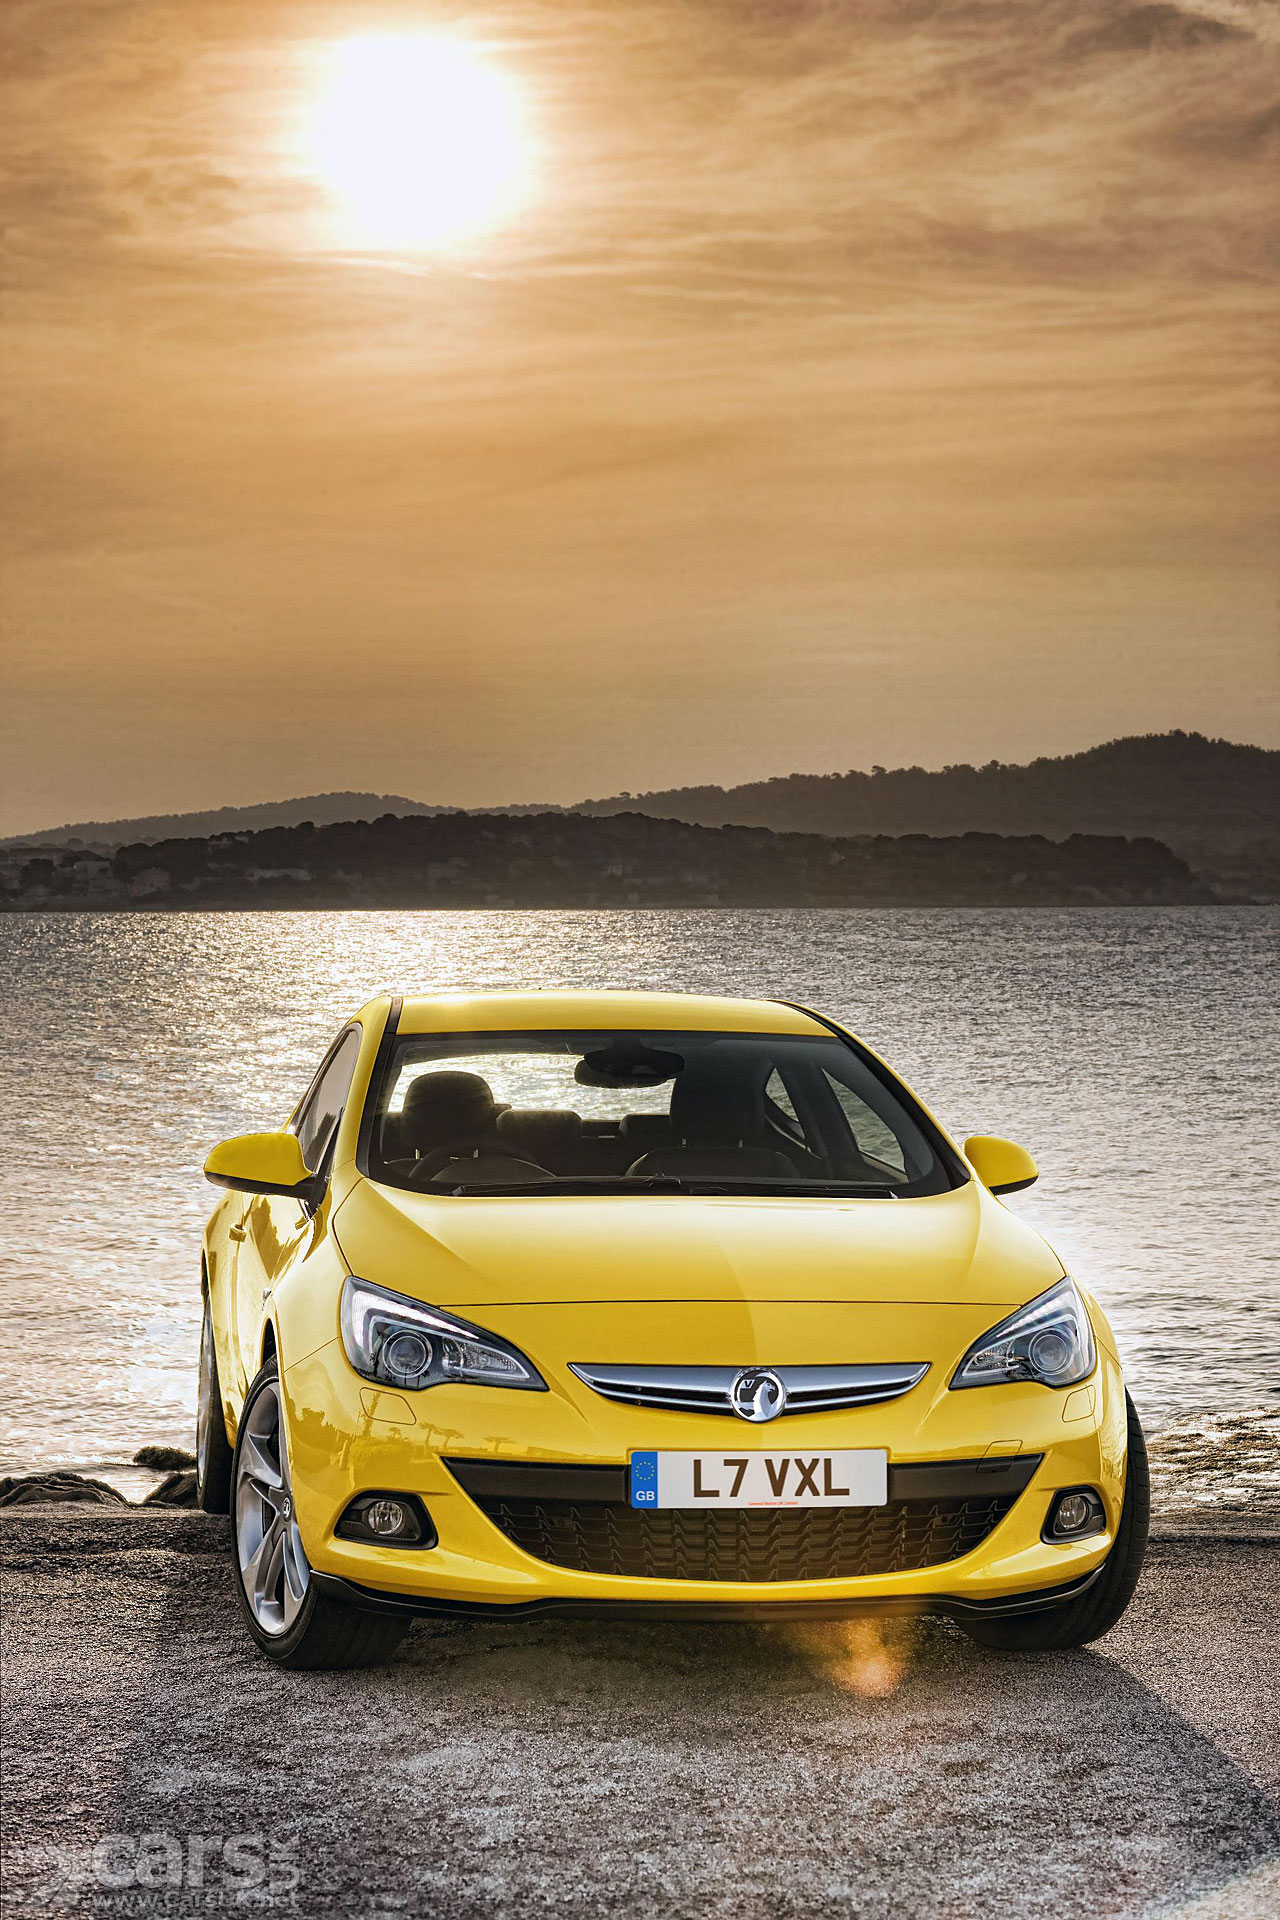 vauxhall astra gtc official photo gallery 2011. Black Bedroom Furniture Sets. Home Design Ideas